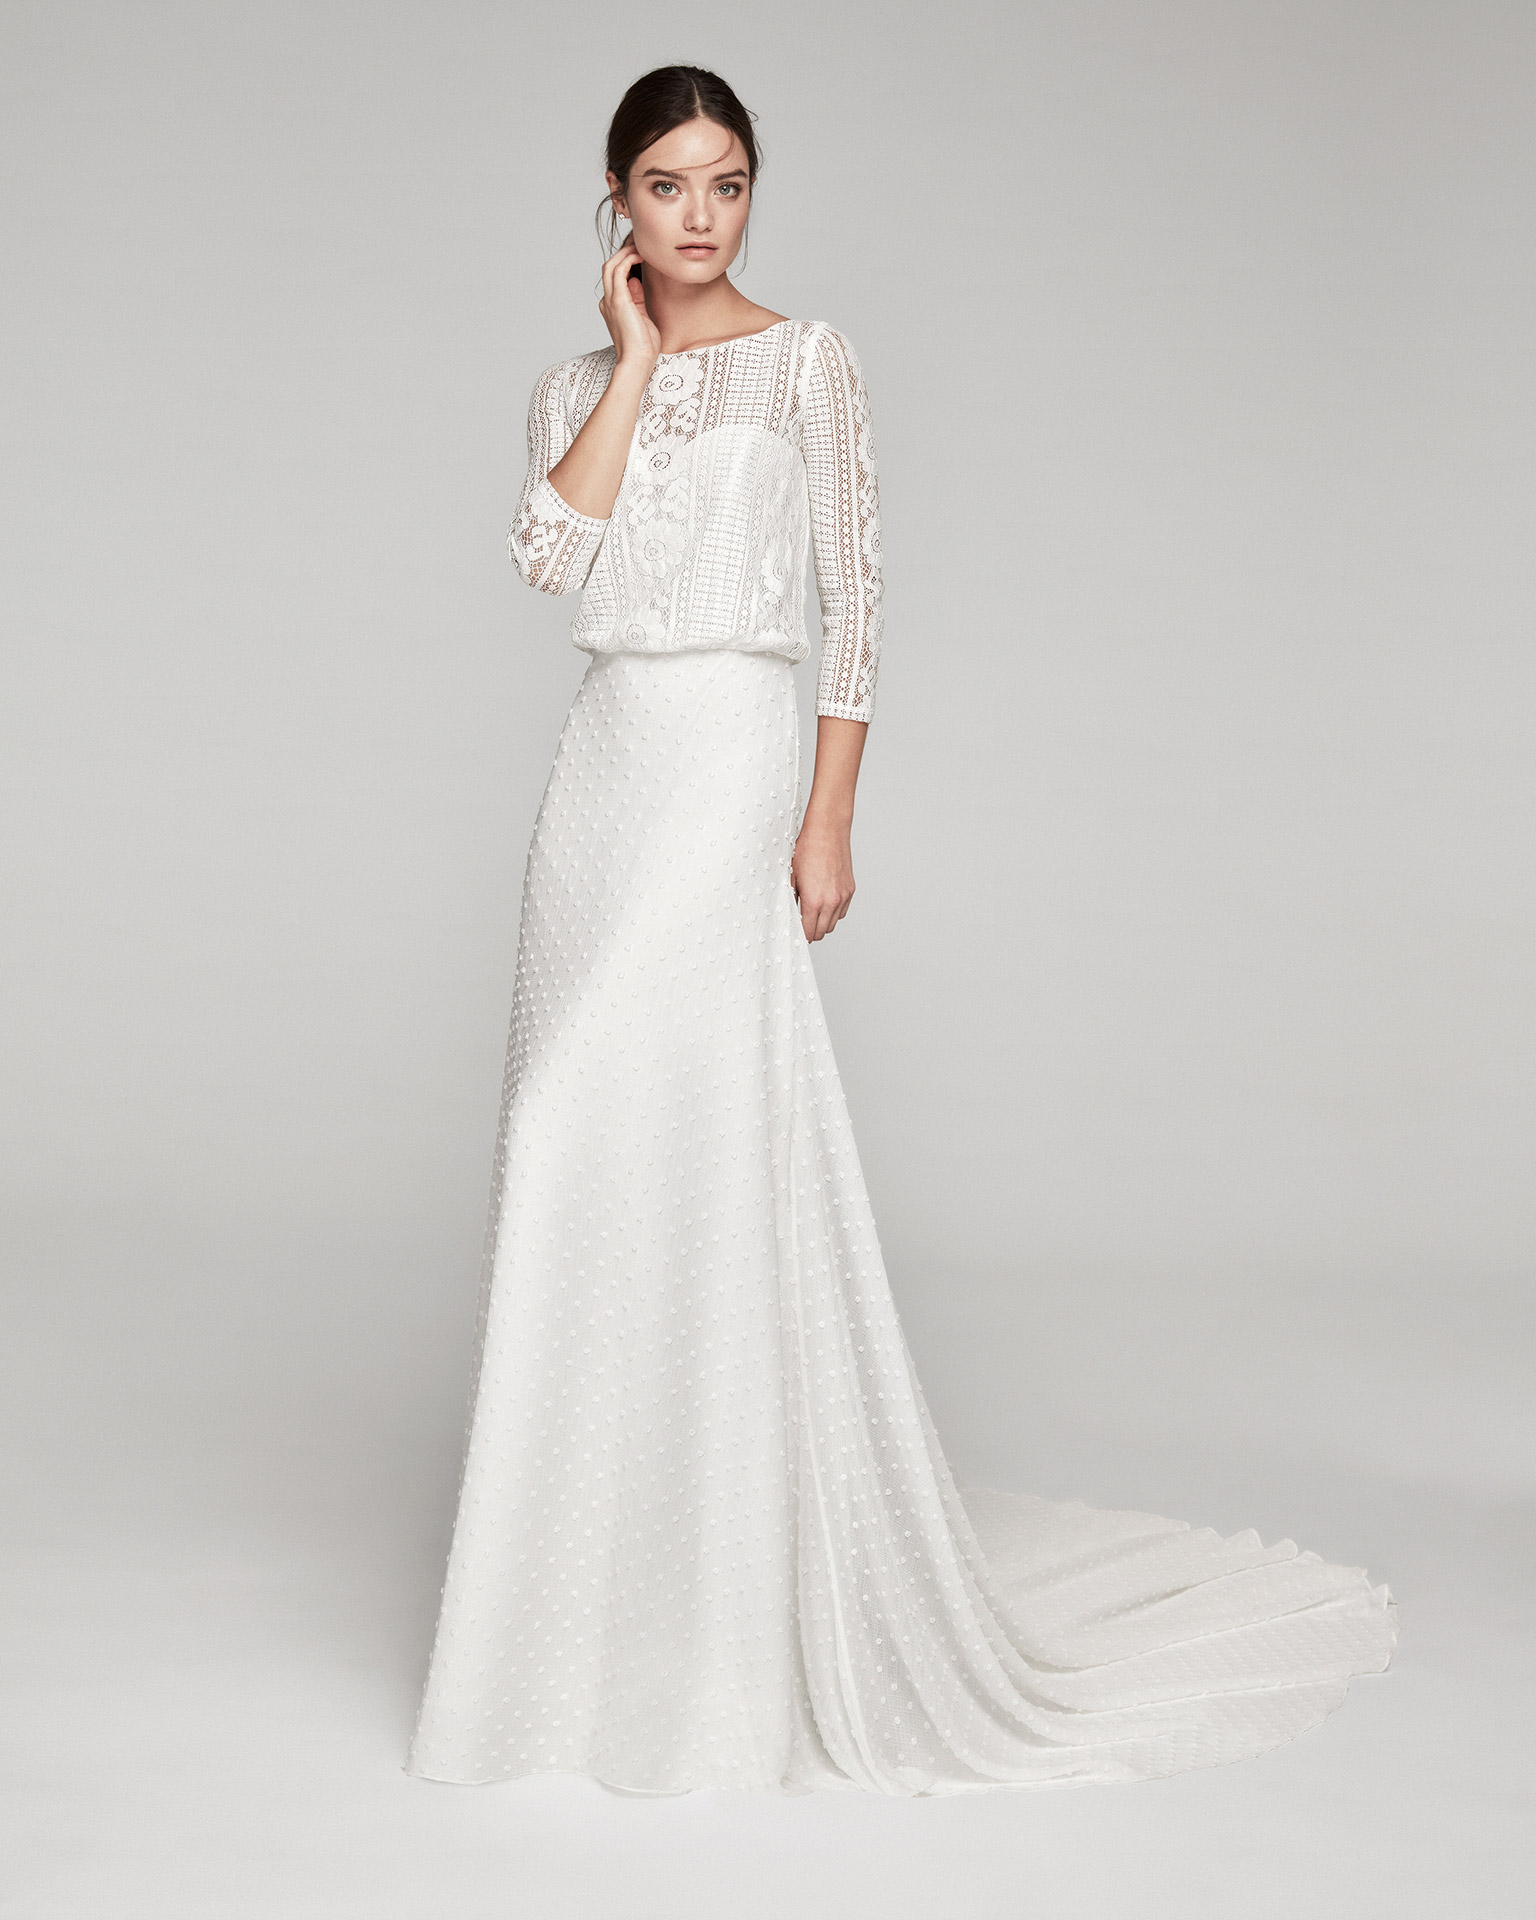 Boho-style wedding dress in lace. Bateau neckline with three-quarter sleeves and polka-dot gauze skirt. Available in natural. 2020 ALMANOVIA Collection.